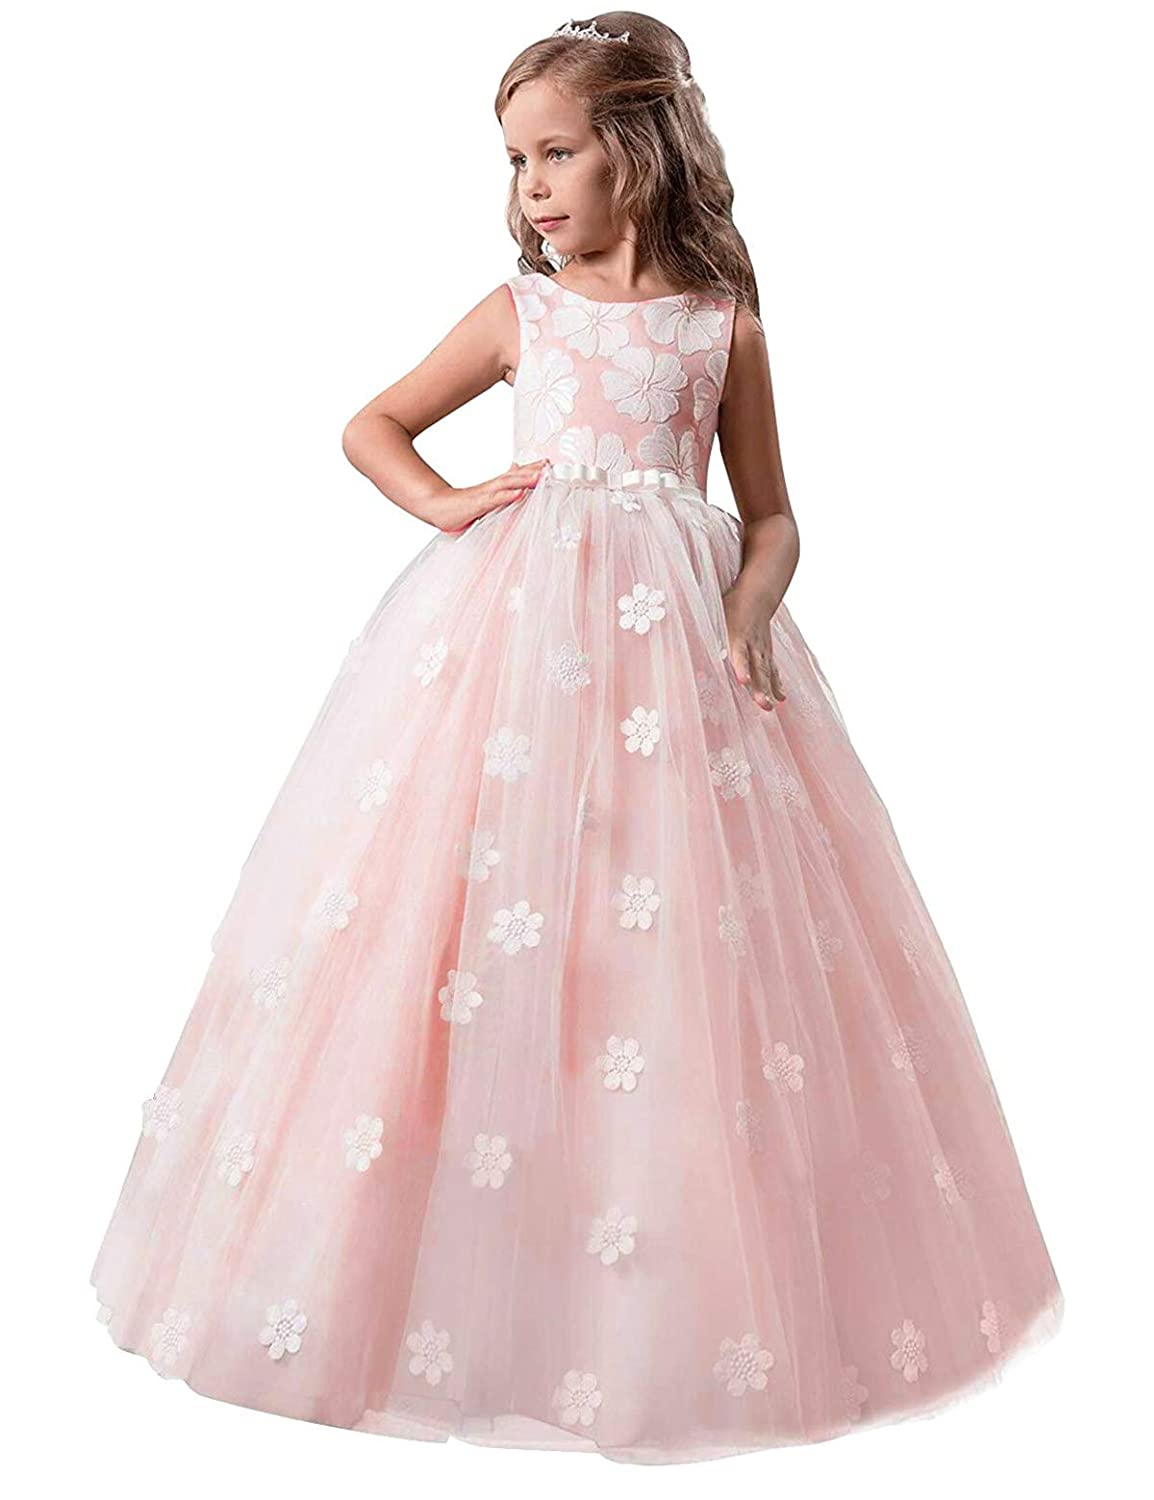 04772433829cc NNJXD Girls Princess Wedding Party Dresses Lace V-Neck Flower Printed Dress  for 7-14 Years